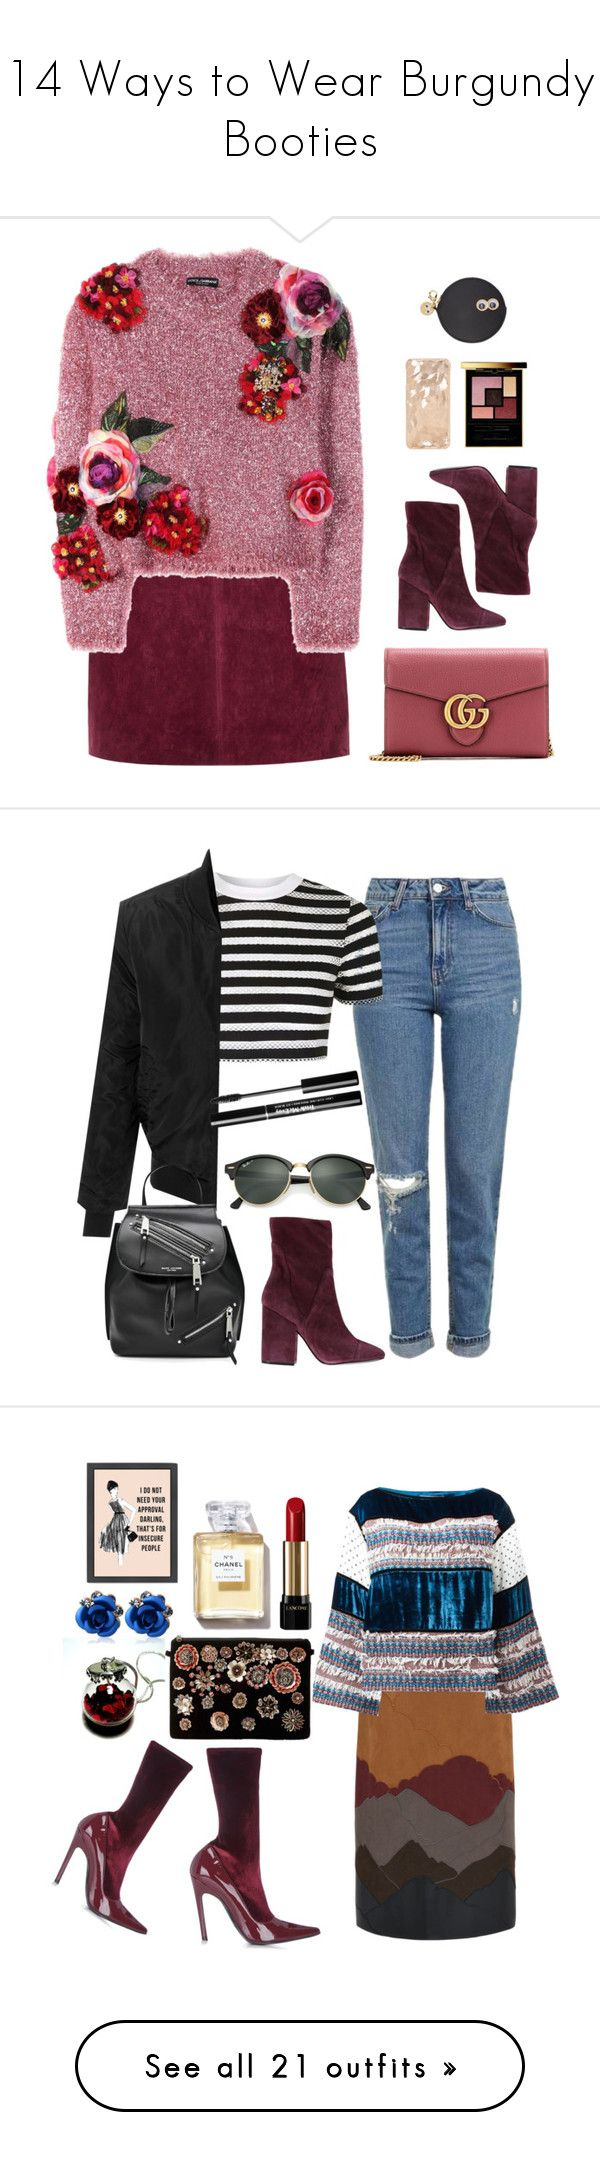 """""""14 Ways to Wear Burgundy Booties"""" by polyvore-editorial ❤ liked on Polyvore featuring waystowear, Burgundybooties, Sophie Hulme, Yves Saint Laurent, River Island, Dolce&Gabbana, Gucci, Kendall + Kylie, Topshop and LE3NO"""